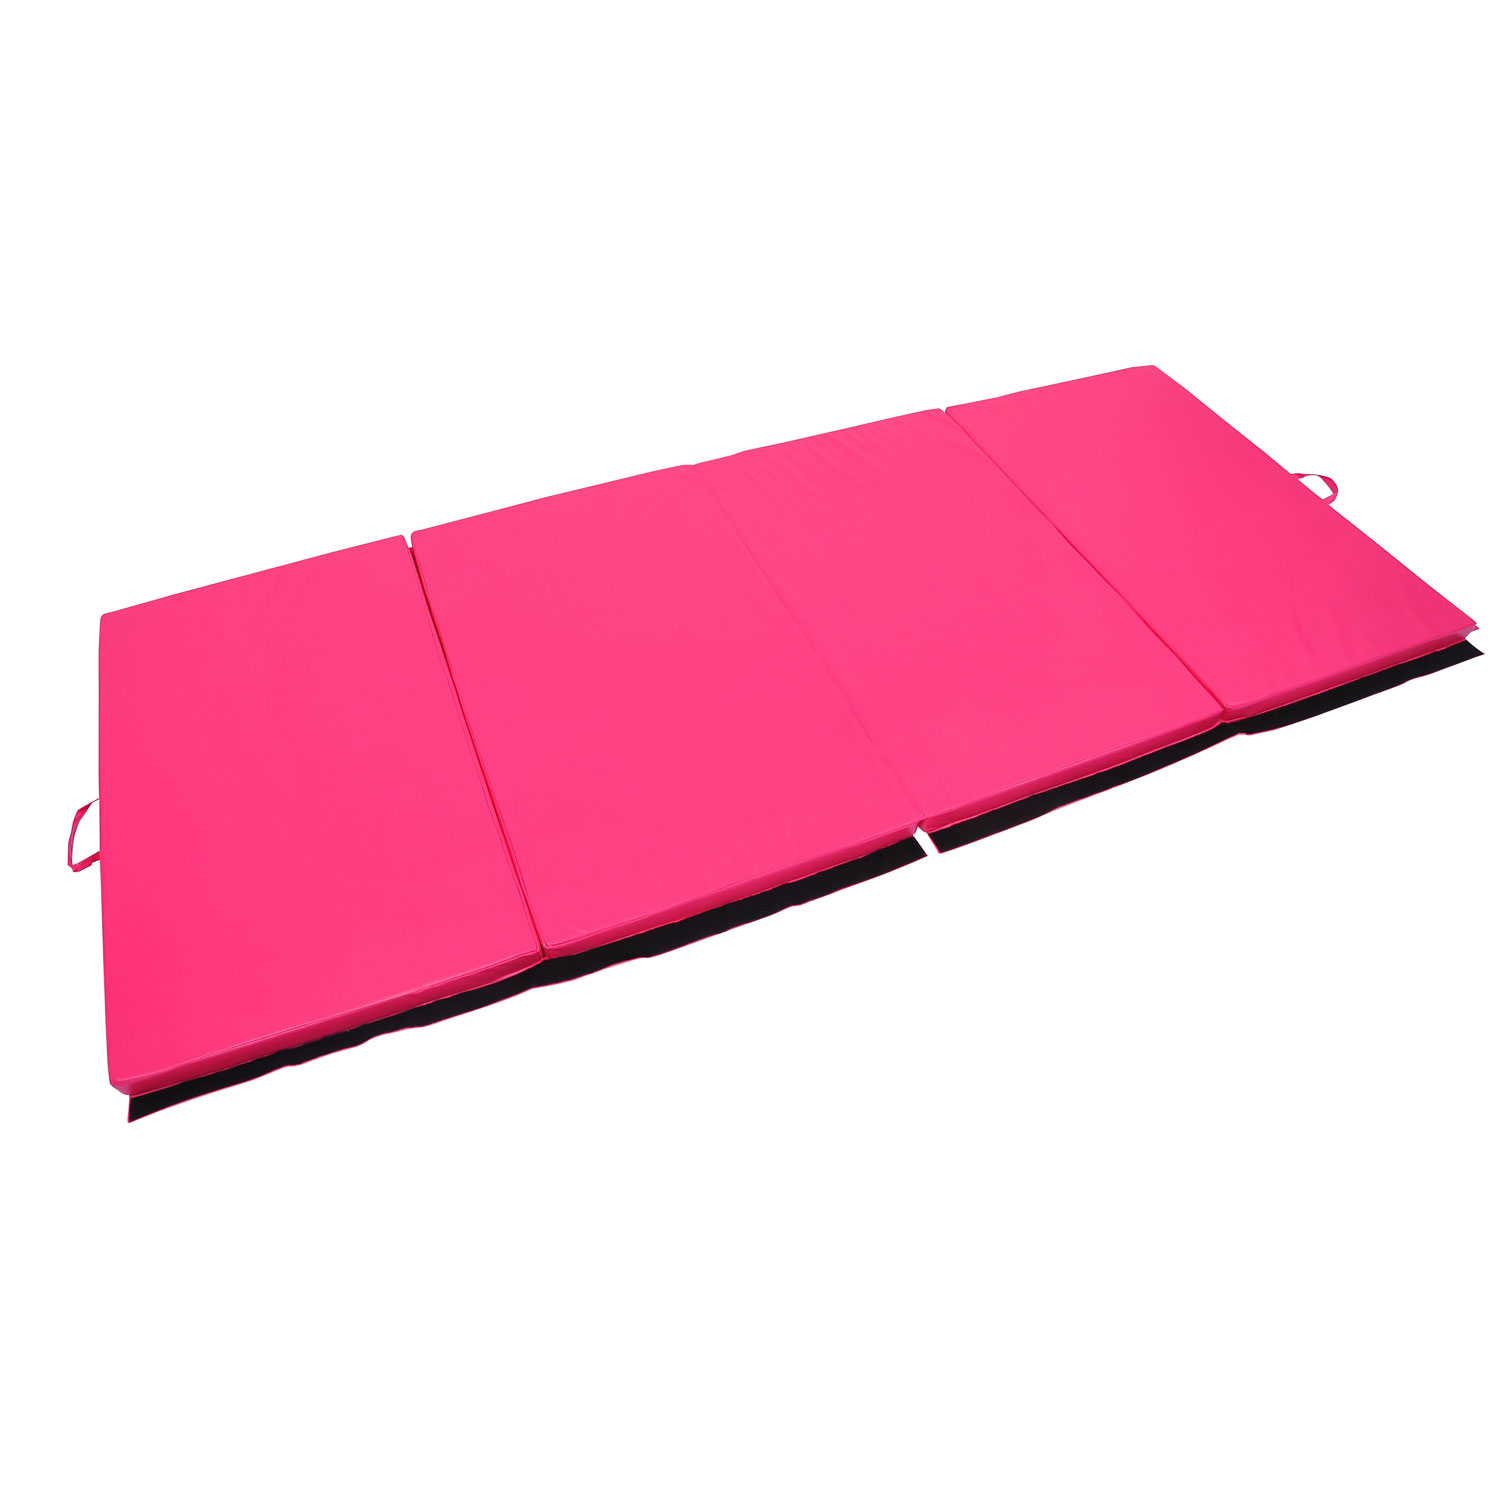 "Soozier 10' x 4' x 2"" PU Leather Folding Gymnastics Tumbling / Martial Arts Mat with Handles - Pink 0"